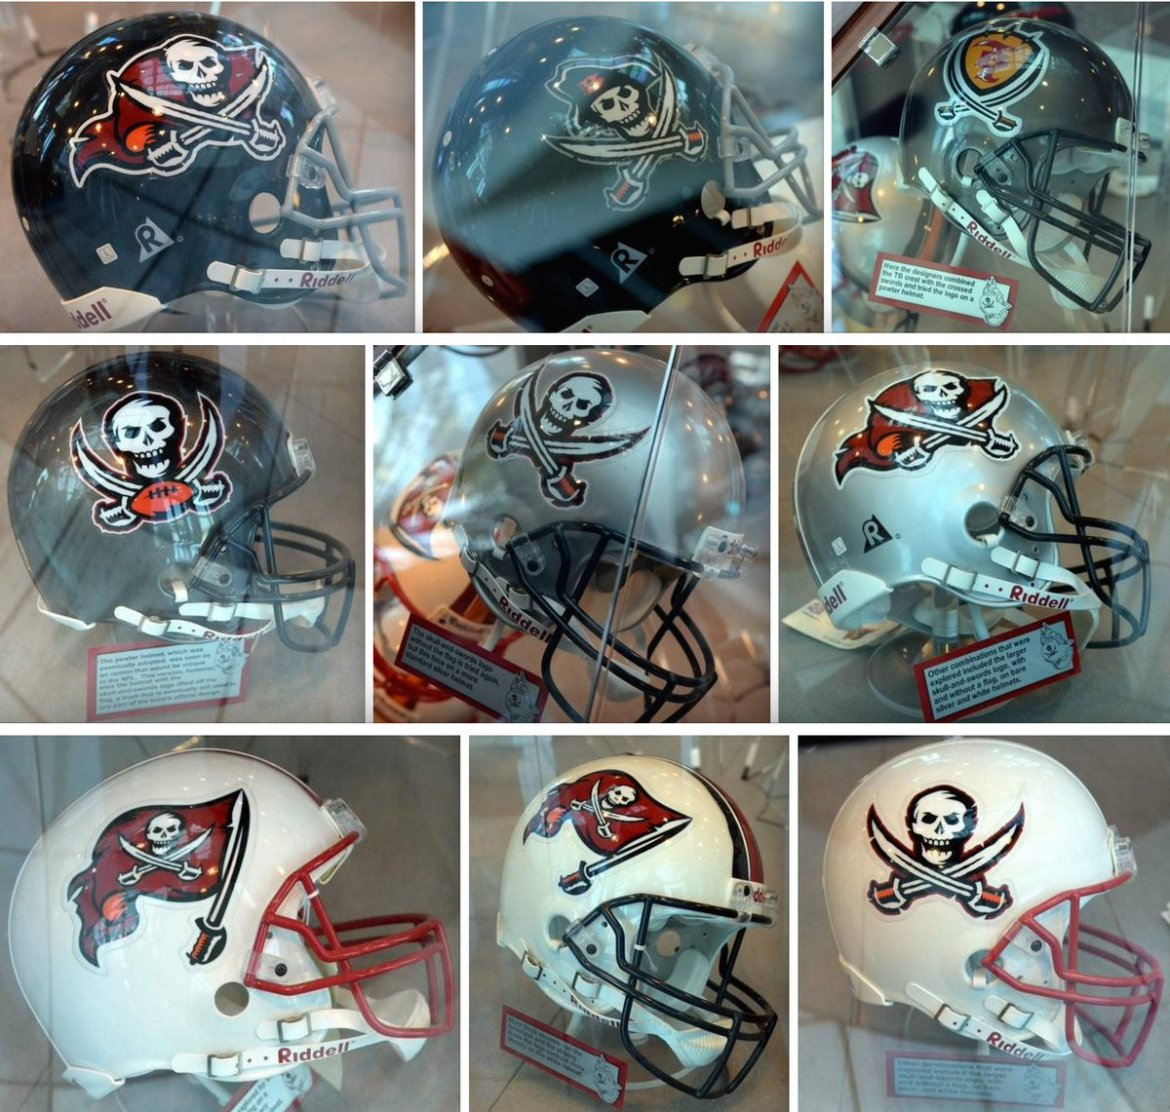 Bucs prototype options from 1997, when team switched from Bucco Bruce to pewter shell. More: